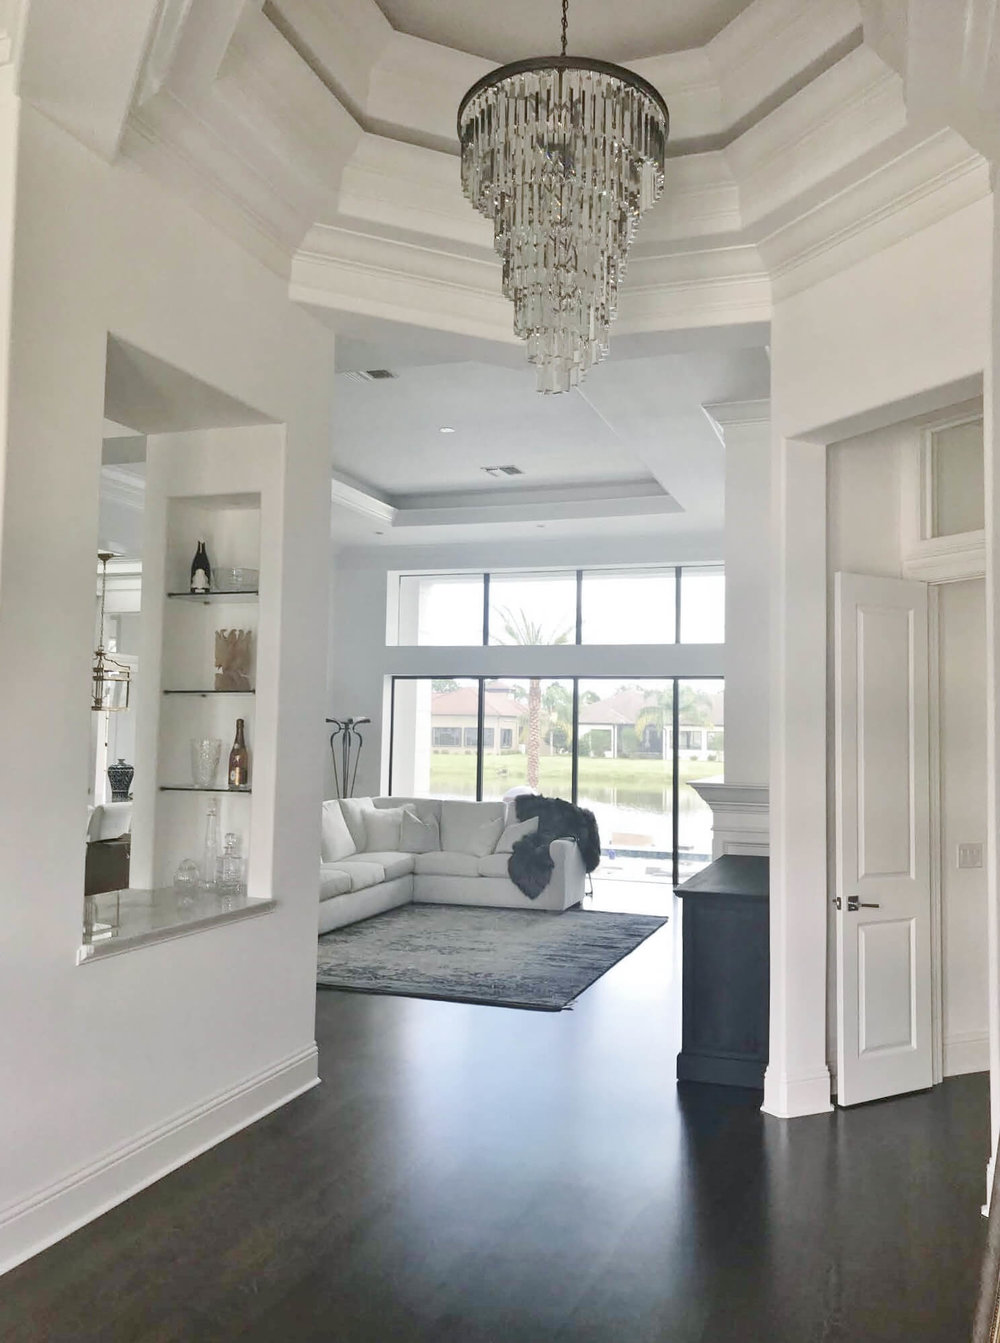 A Dining Room Furniture Selection Tweaked With An EDesign Consultation | Entry Hall with Chandelier